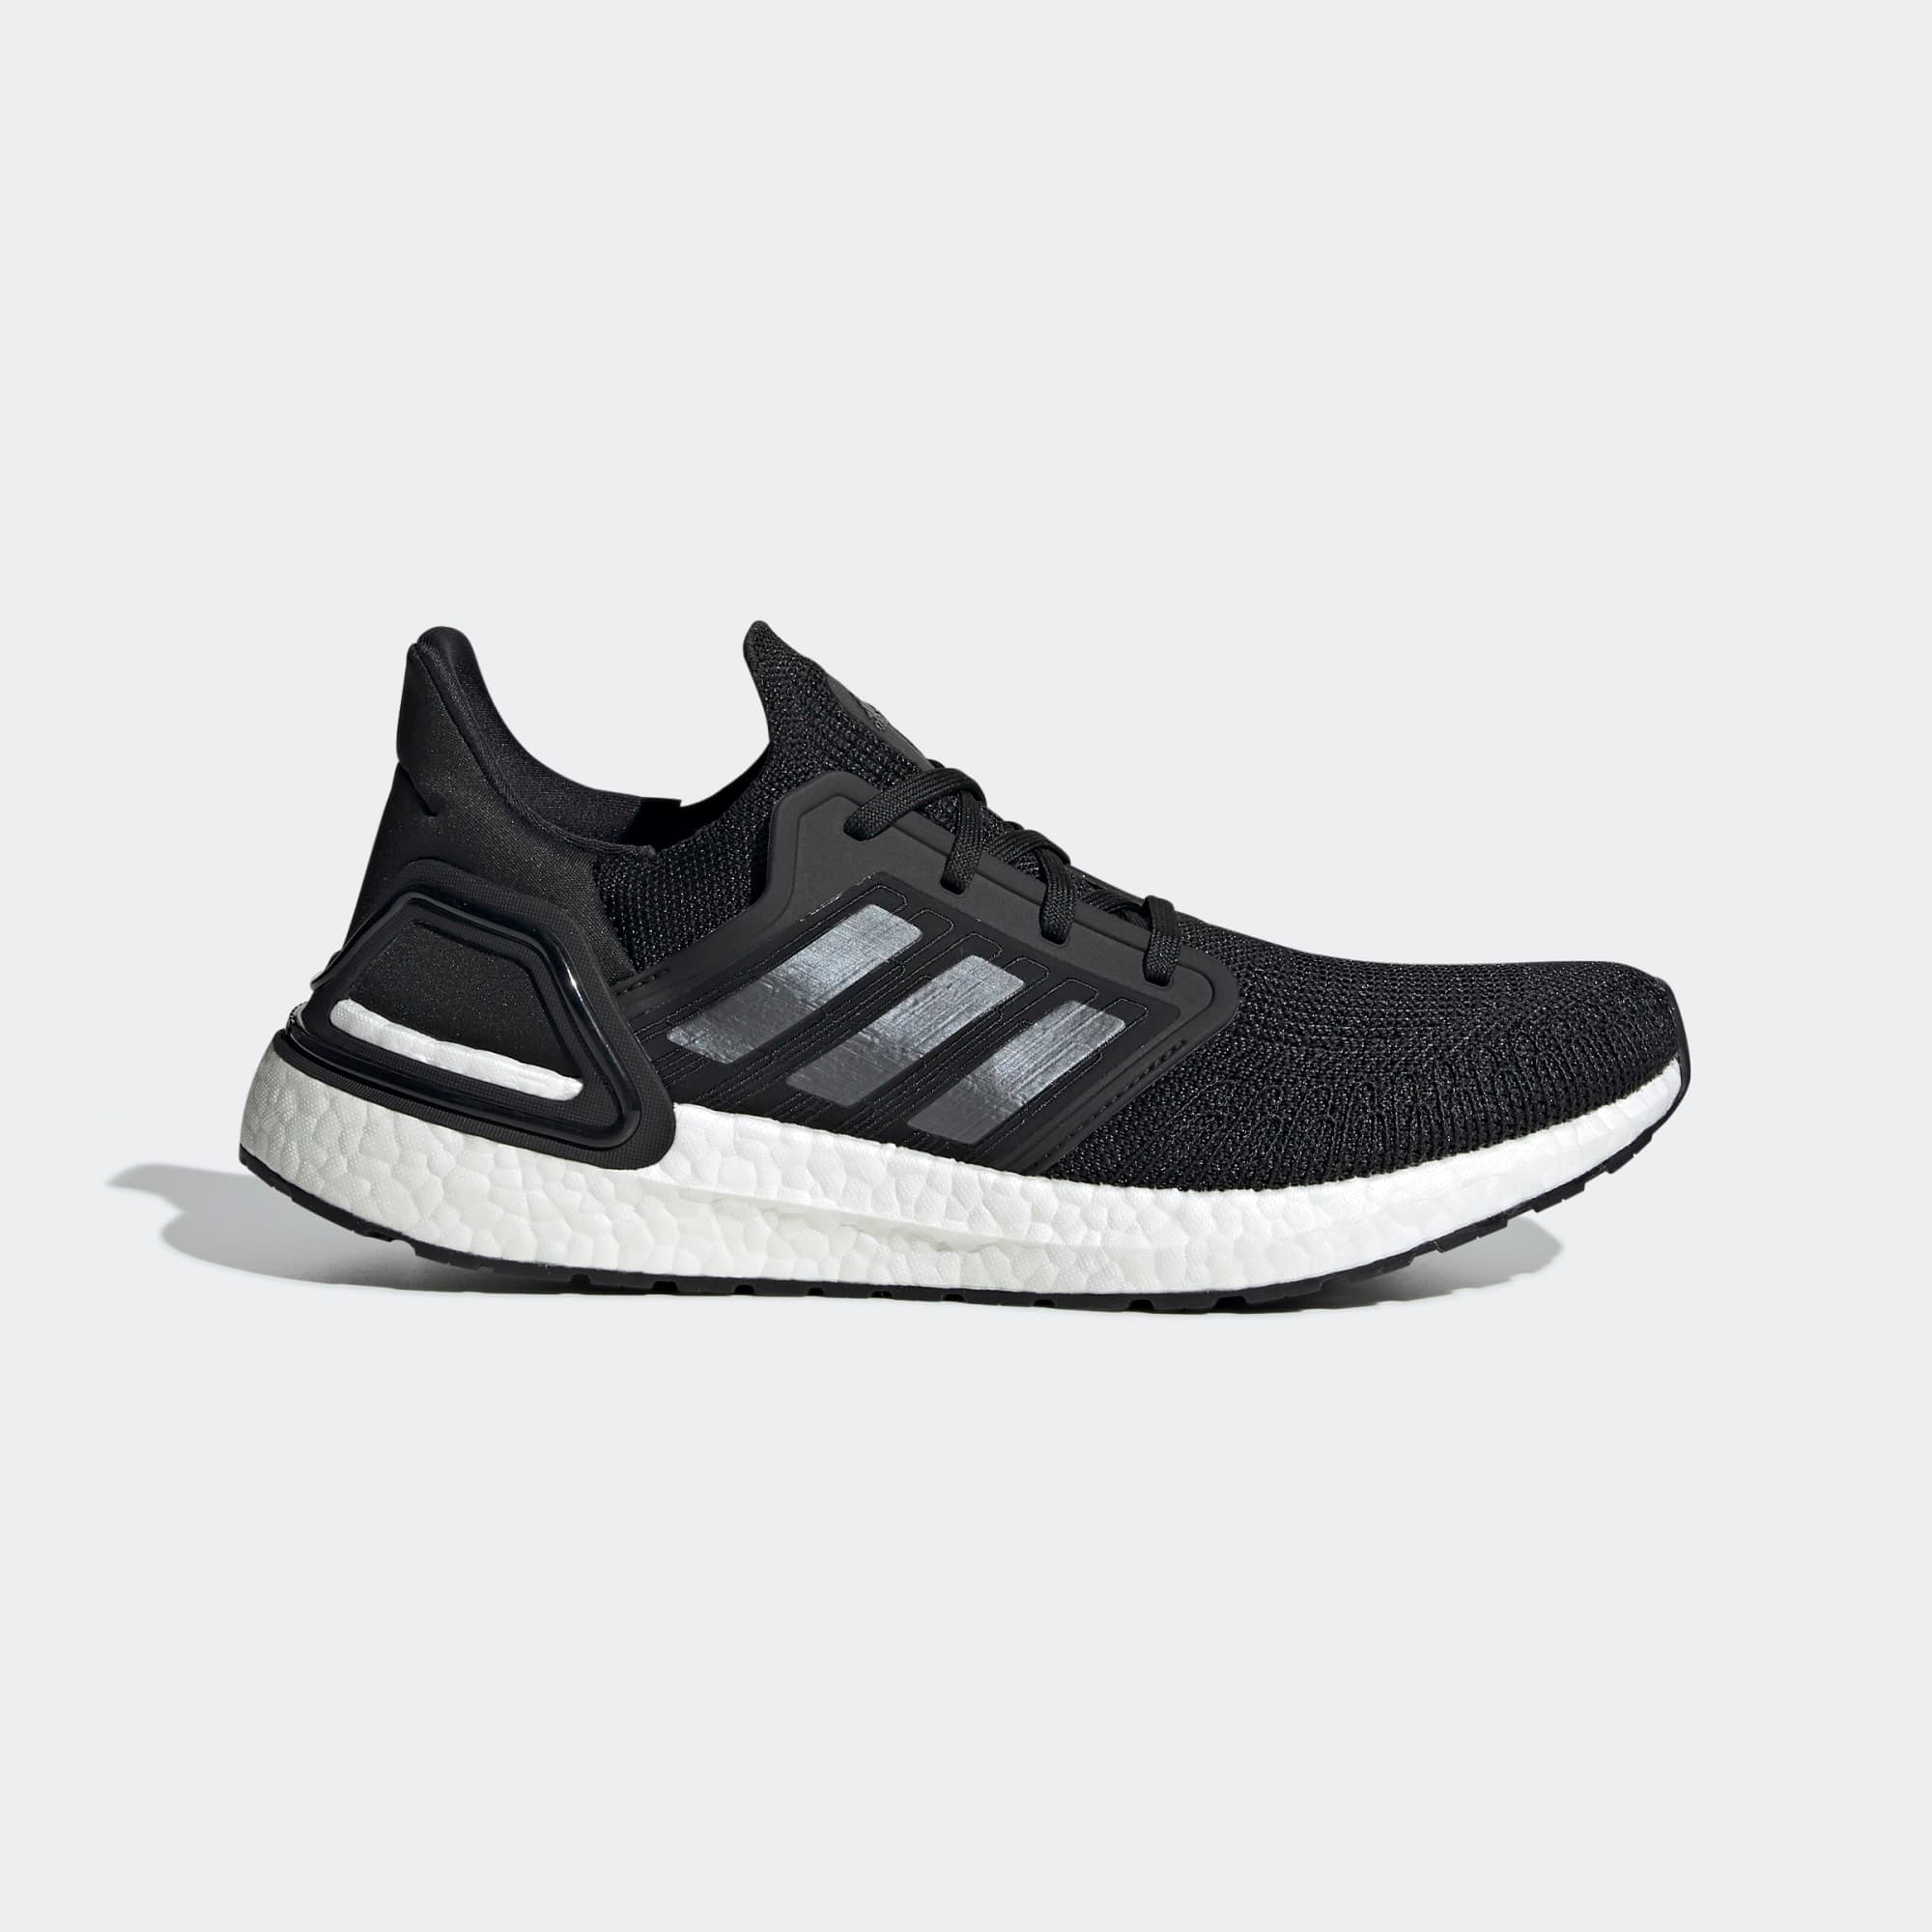 Adidas Ultraboost 20 Black & White, Triple White, More - $90 FS